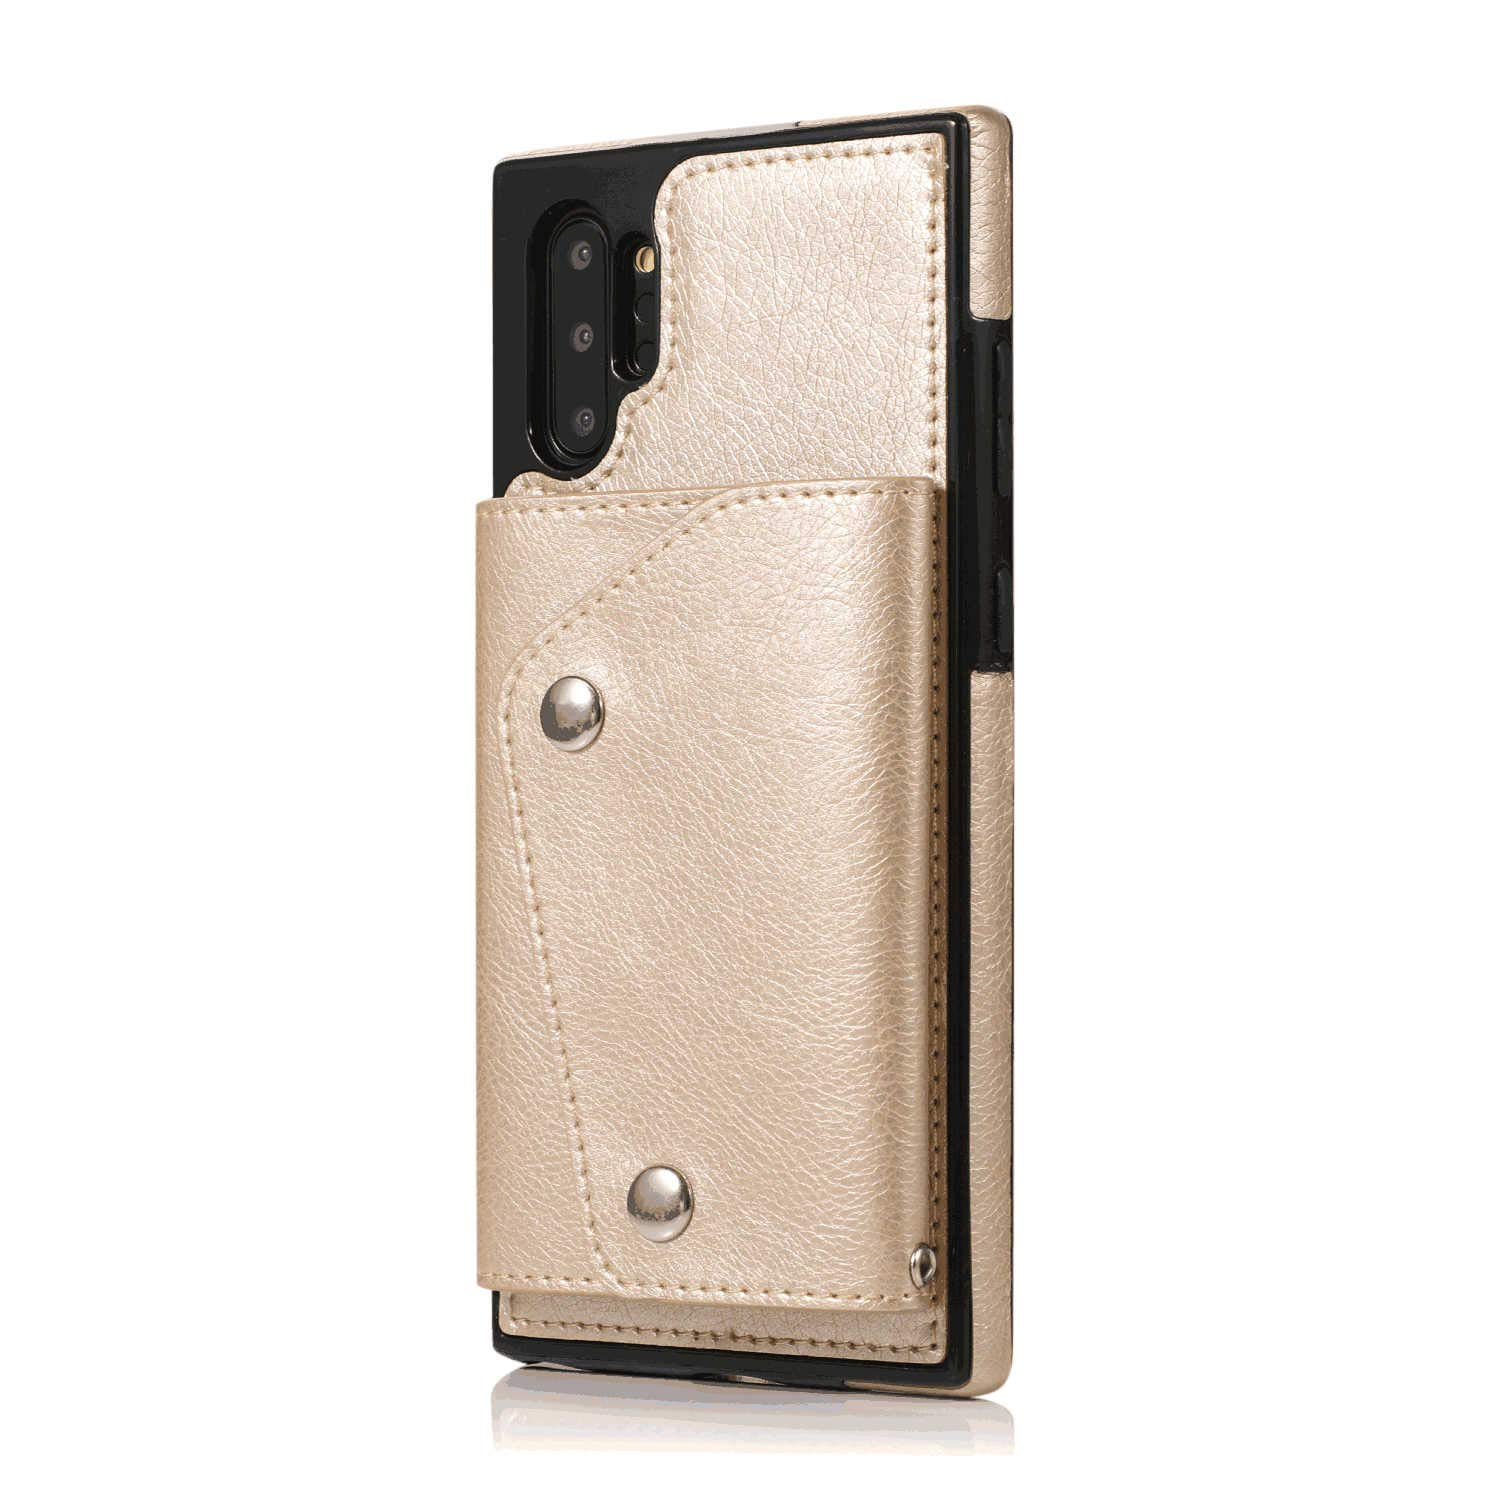 Leather Case for Samsung Galaxy S10 Plus Flip Cover fit for Samsung Galaxy S10 Plus Business Gifts with Waterproof-case Bags